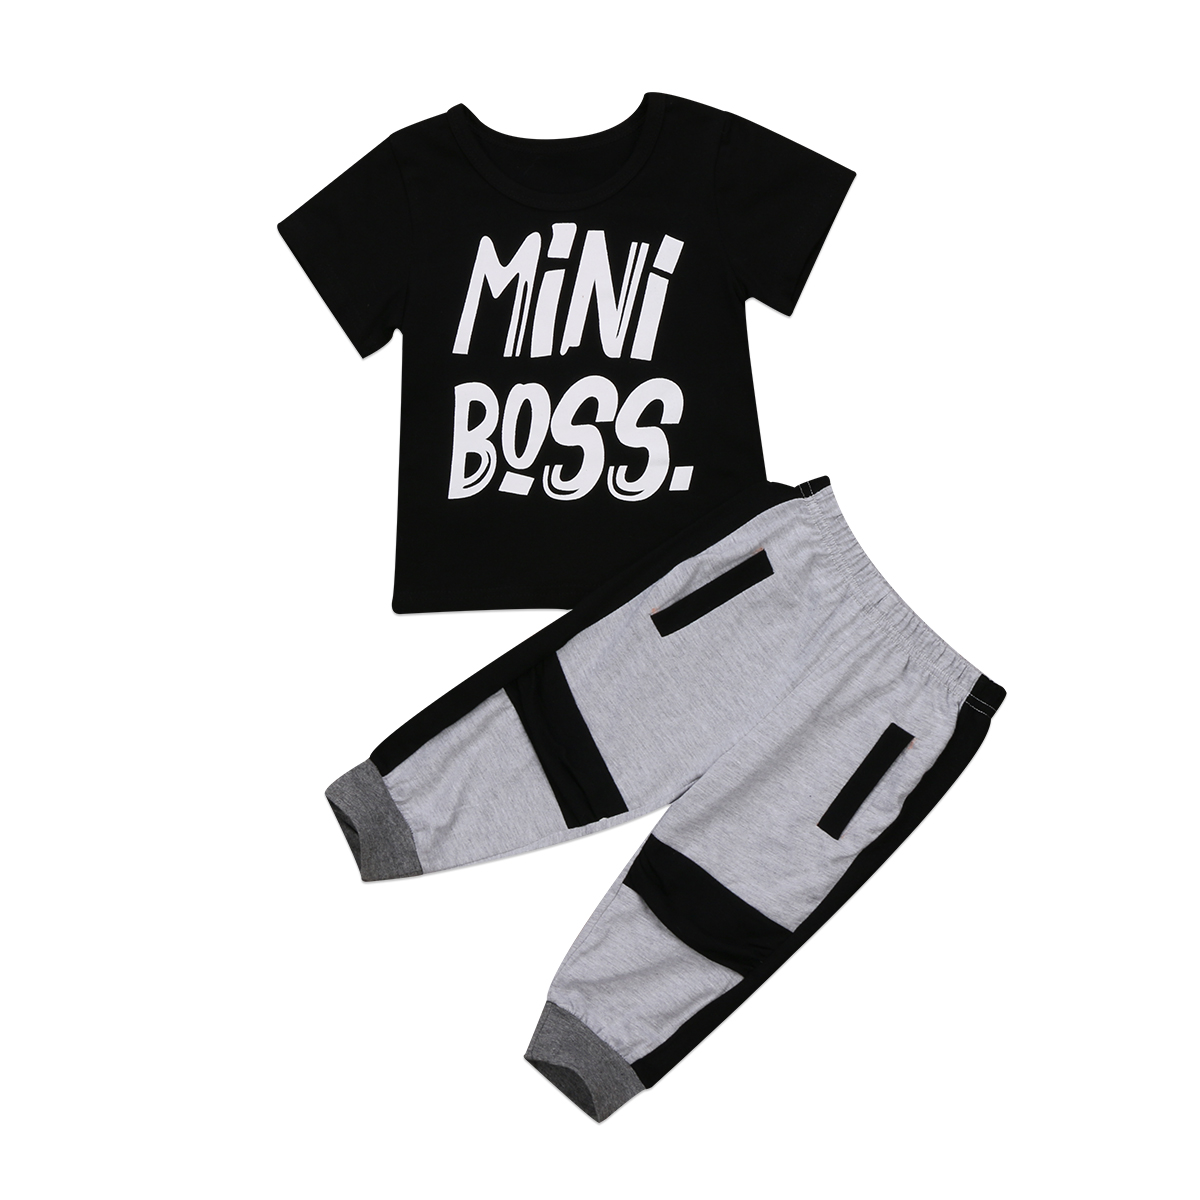 2Pcs Toddler Kids Baby Boy Clothes Sets T-shirt Tops Short Sleeve Pants Harem Outfits Set Cotton Clothing Baby Boys 1-6T 2pcs newborn baby boys clothes set gold letter mamas boy outfit t shirt pants kids autumn long sleeve tops baby boy clothes set